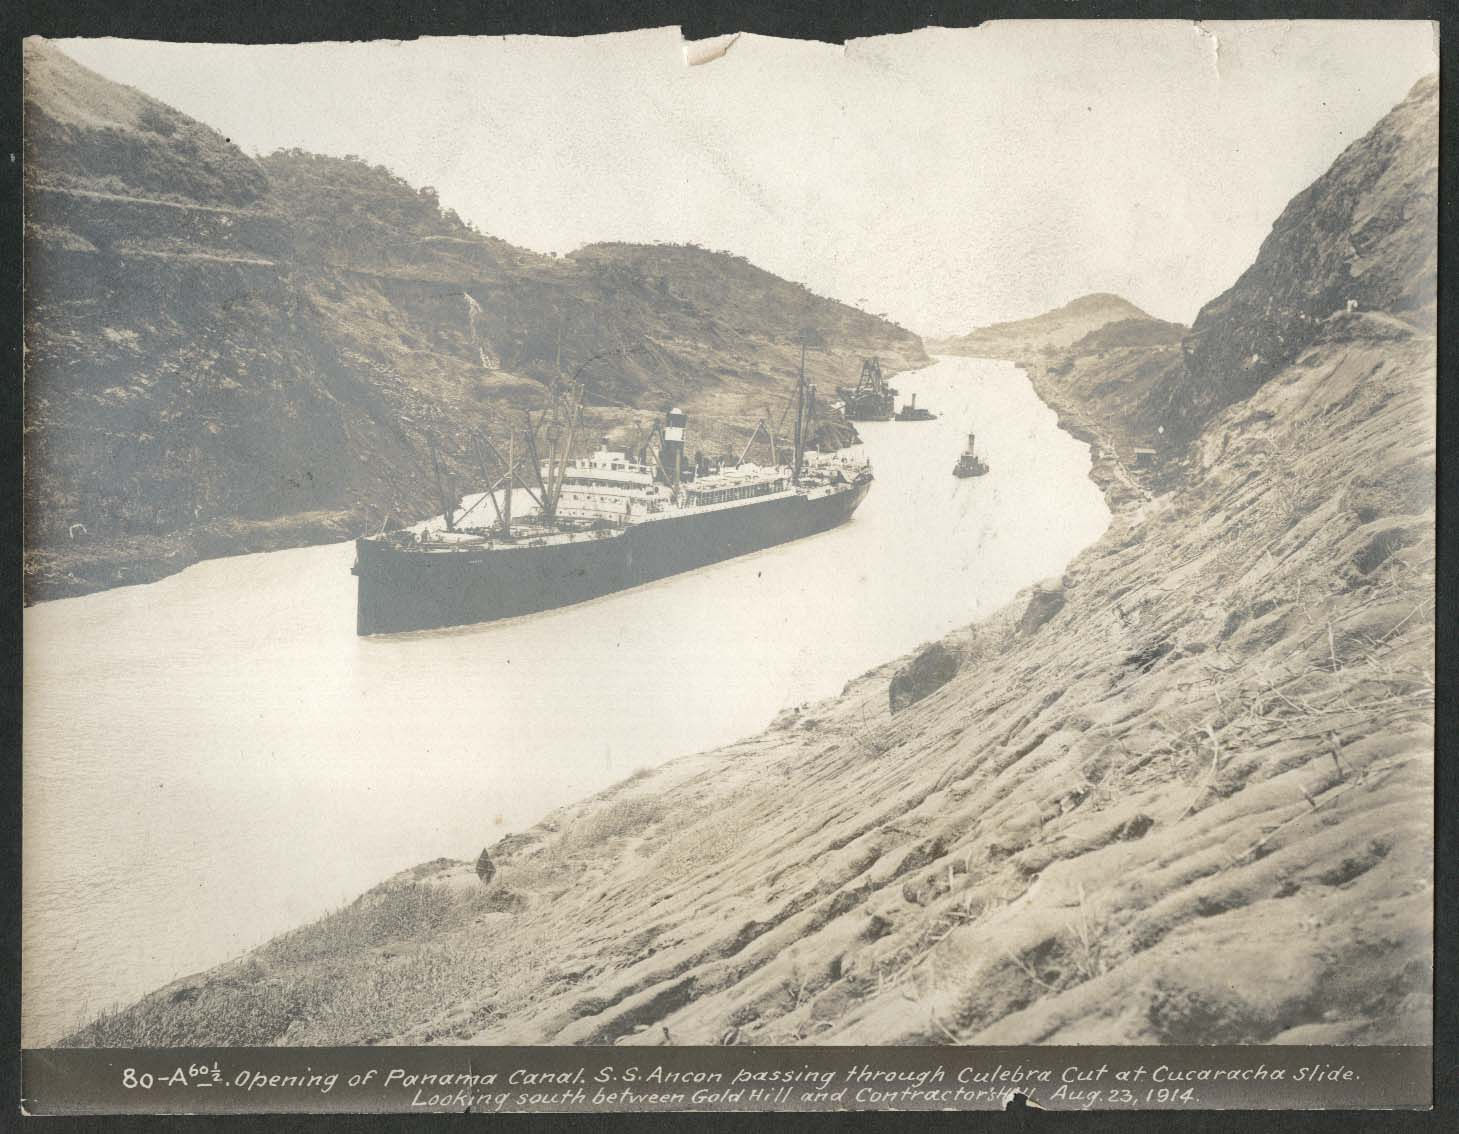 Image for Panama Canal photo 1914 Opening of canal with S S Ancon at Culebra Cut